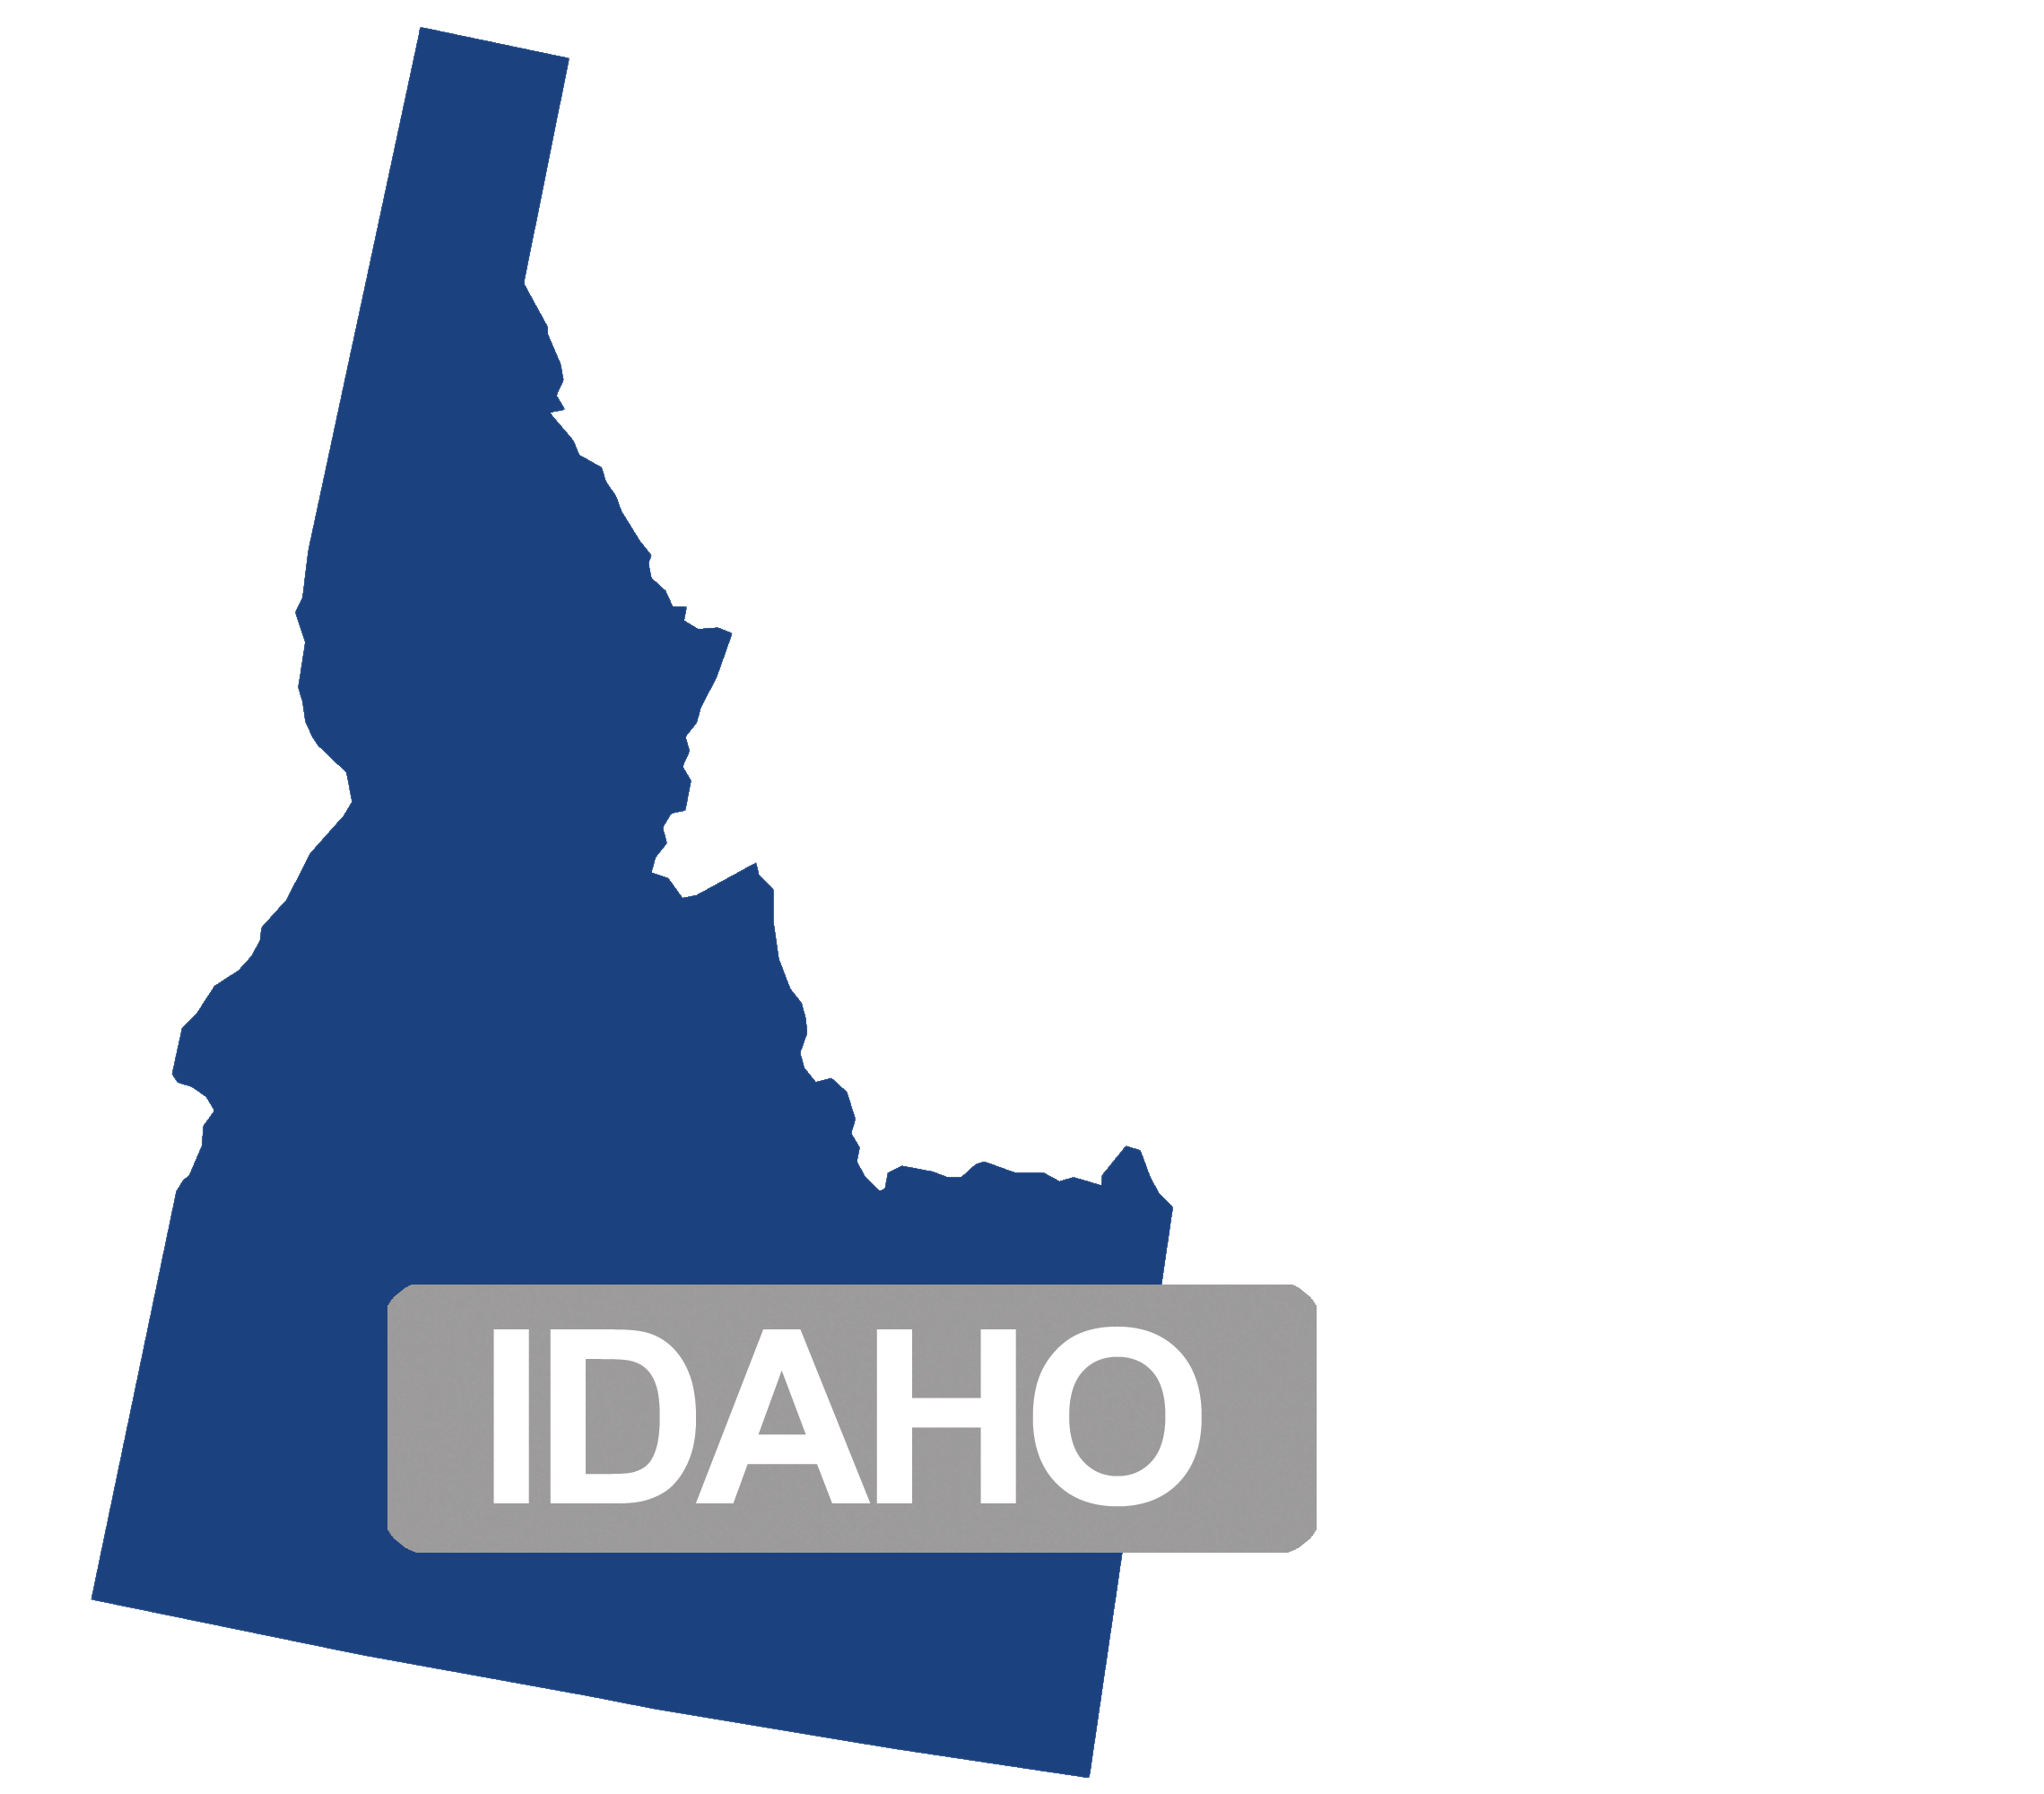 Idaho drawing silhouette. Png transparent images pluspng